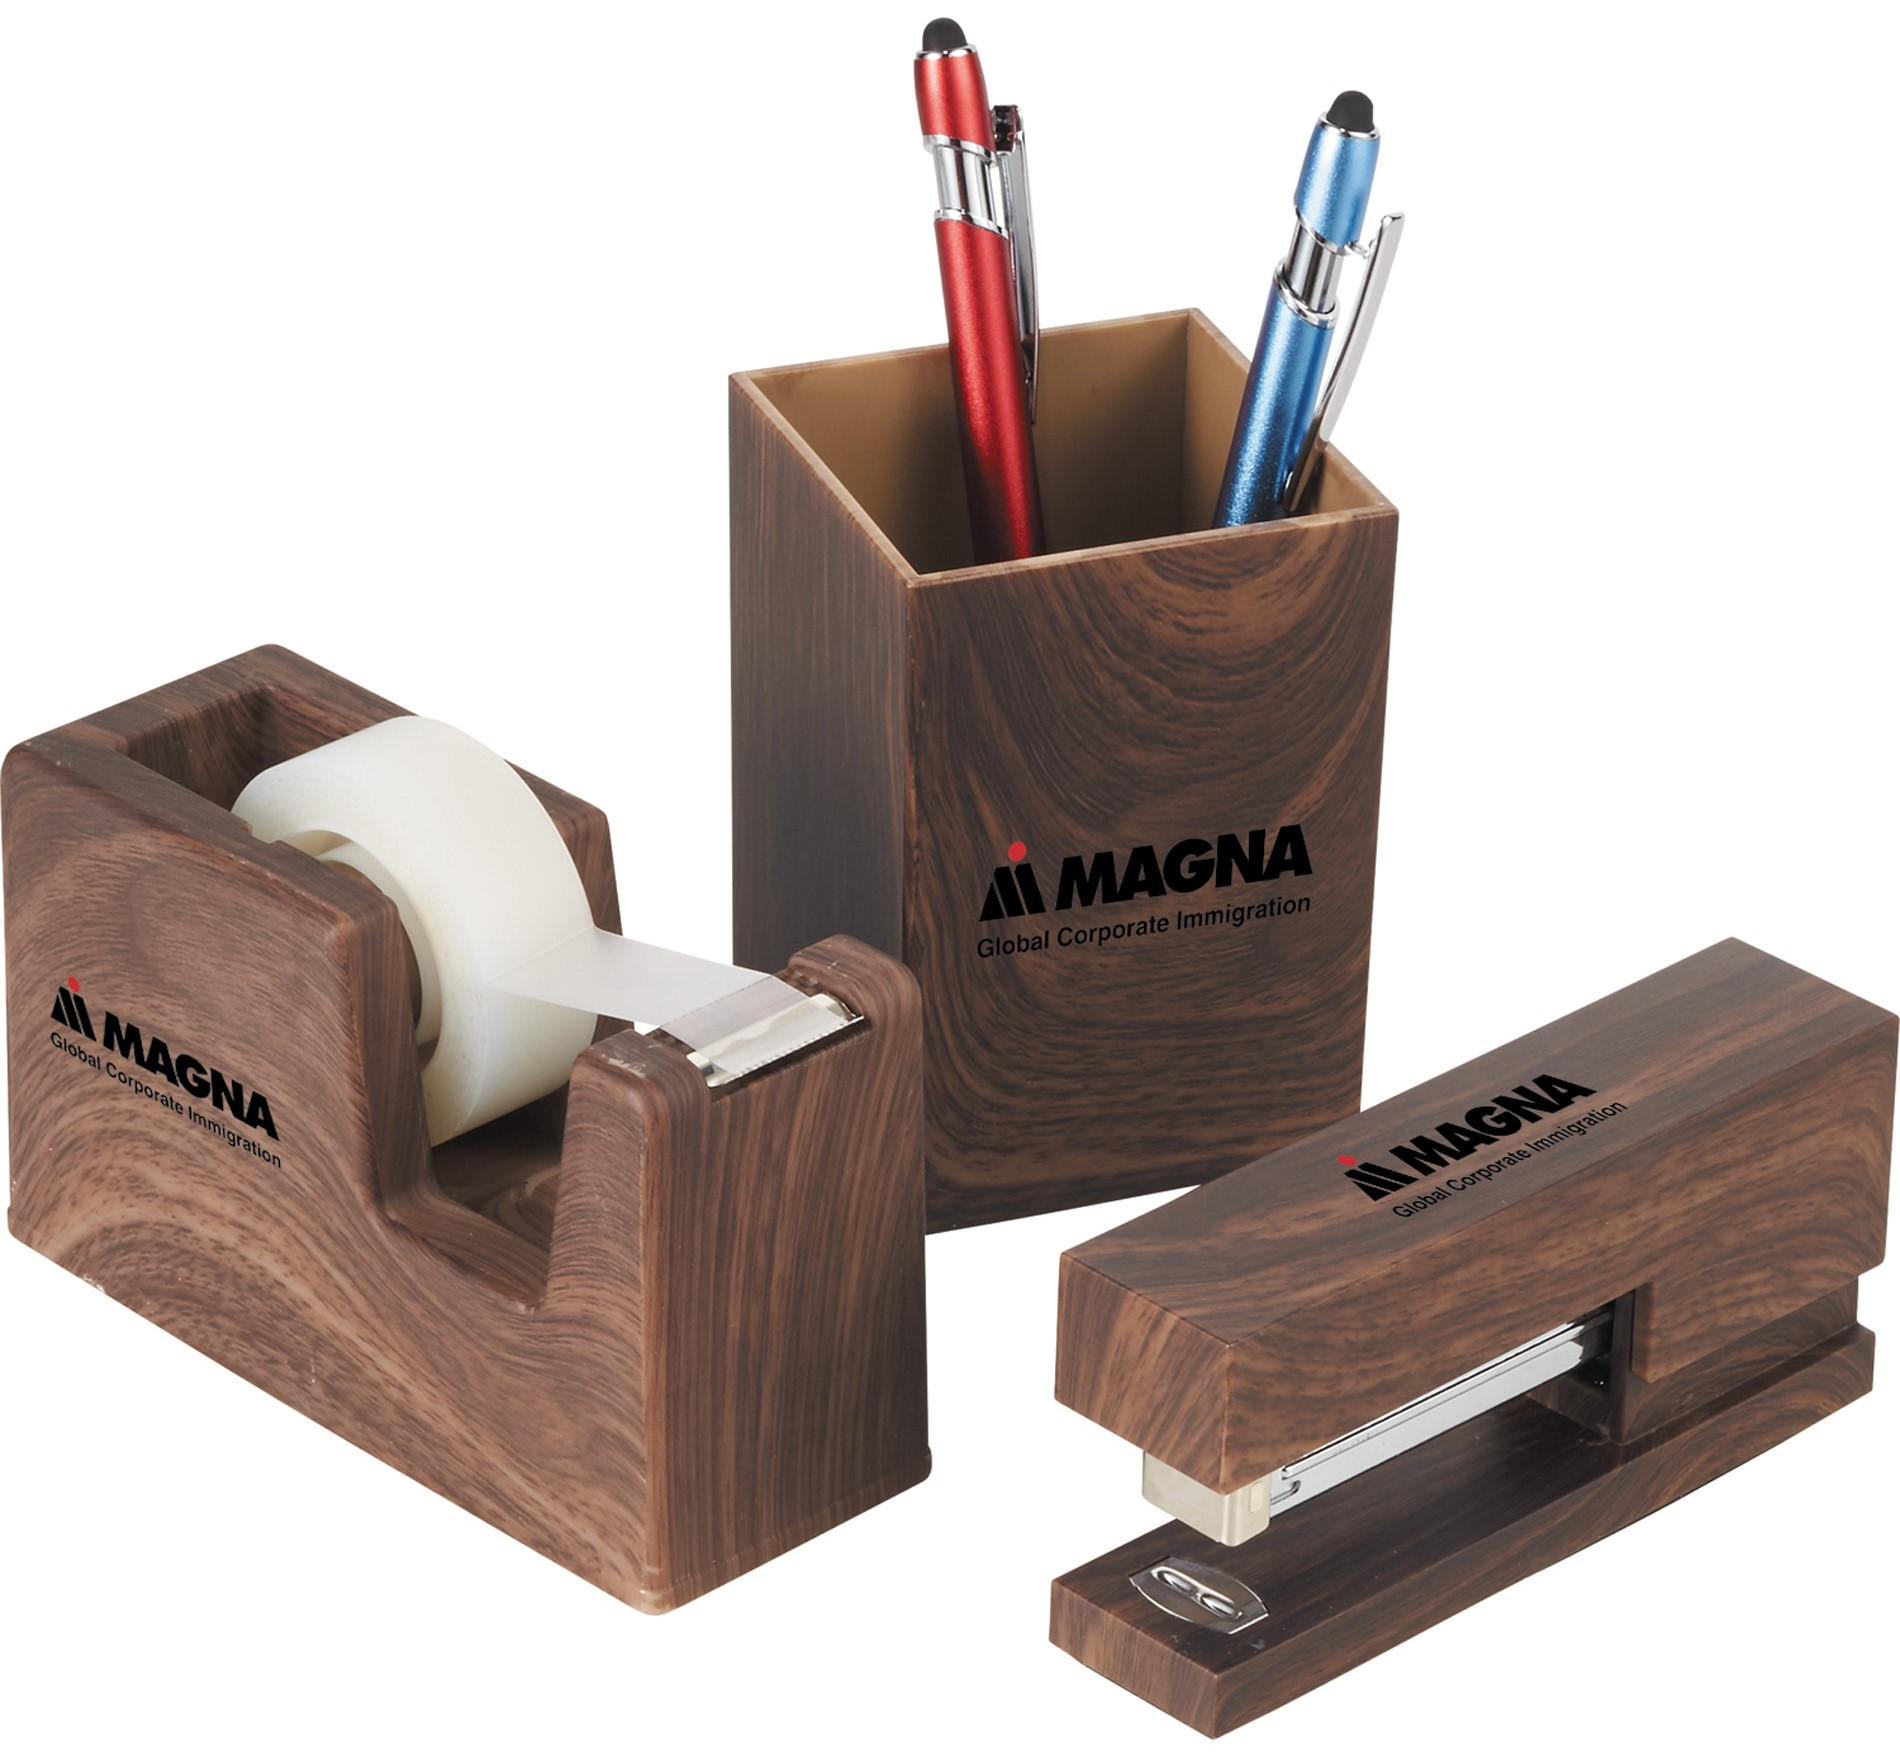 Small Desk Organizer Decorate Your Desk With Custom Organizers Captiv8